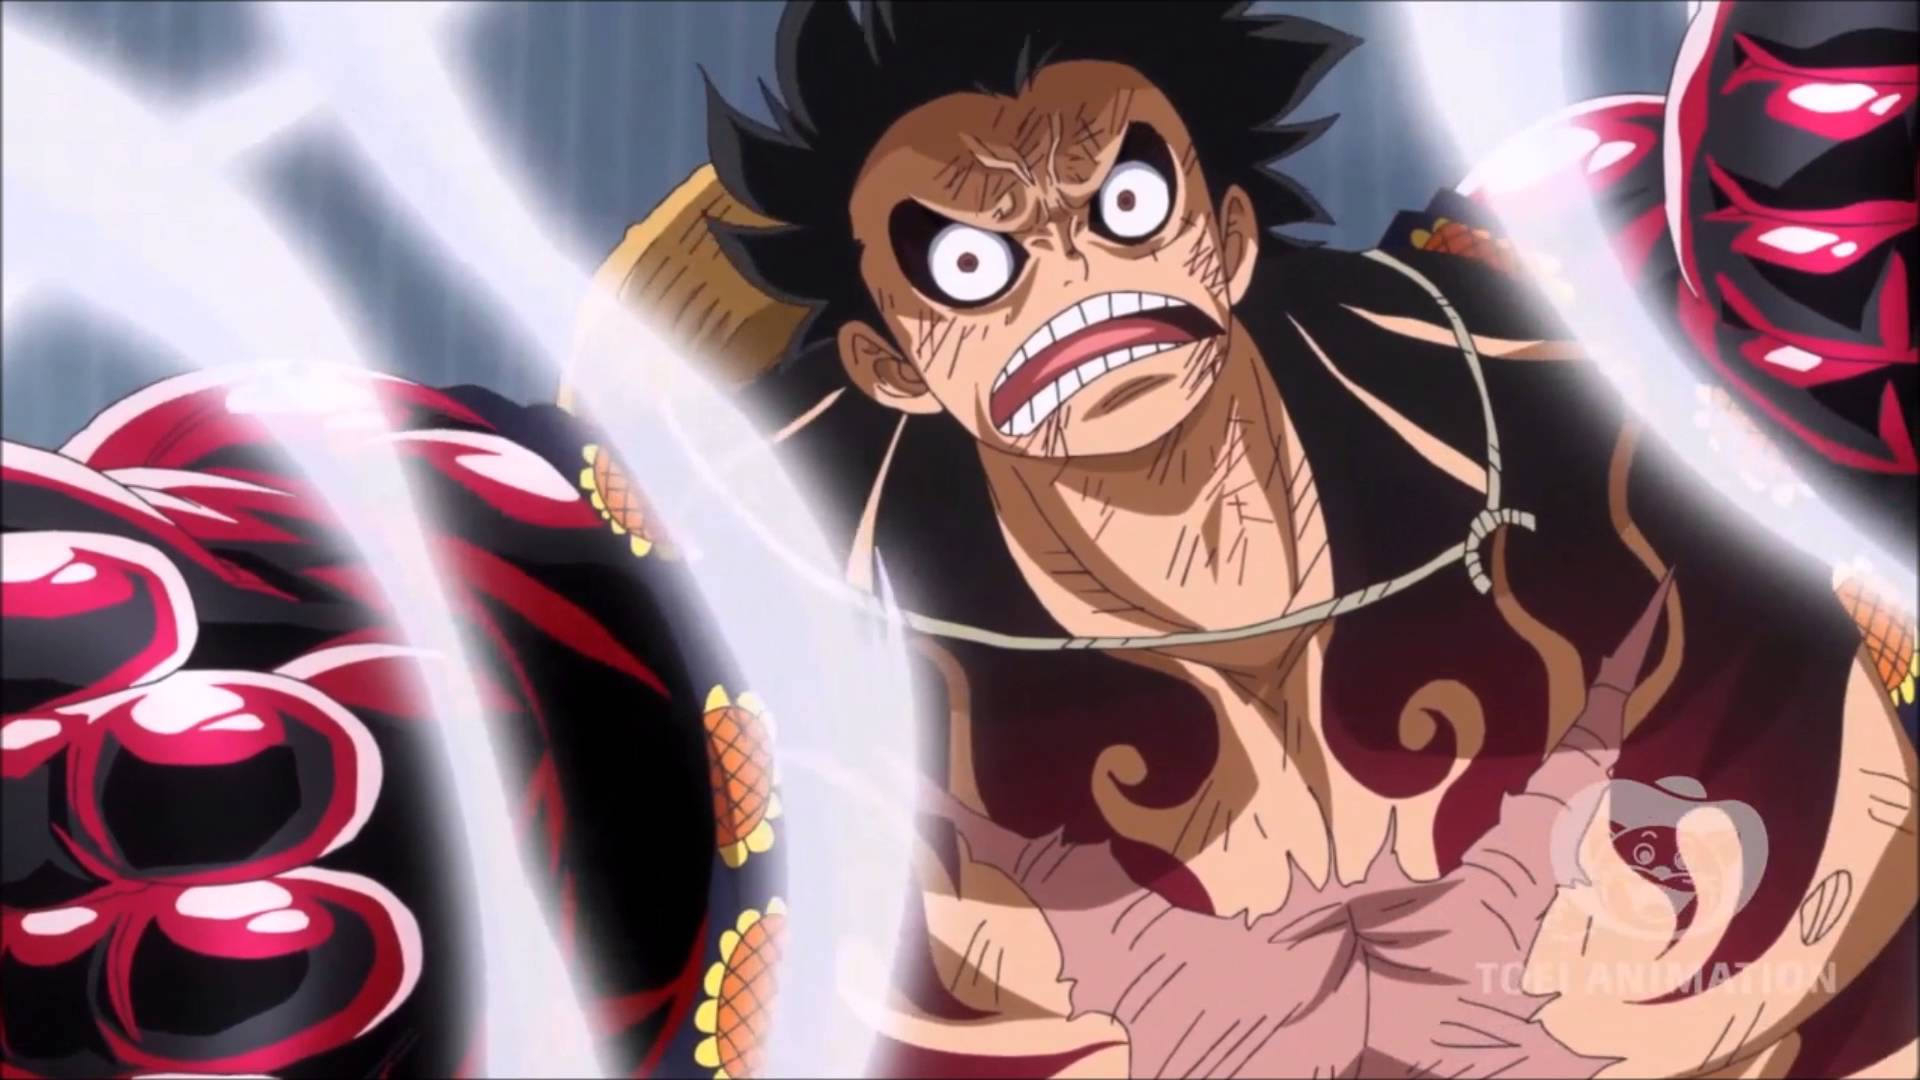 Luffy snakeman gear fourth one piece wallpaper 4k for desktop, iphone, pc, laptop, computer, android phone, smartphone, imac, macbook, tablet,. Luffy Gear 4 Wallpapers - Wallpaper Cave